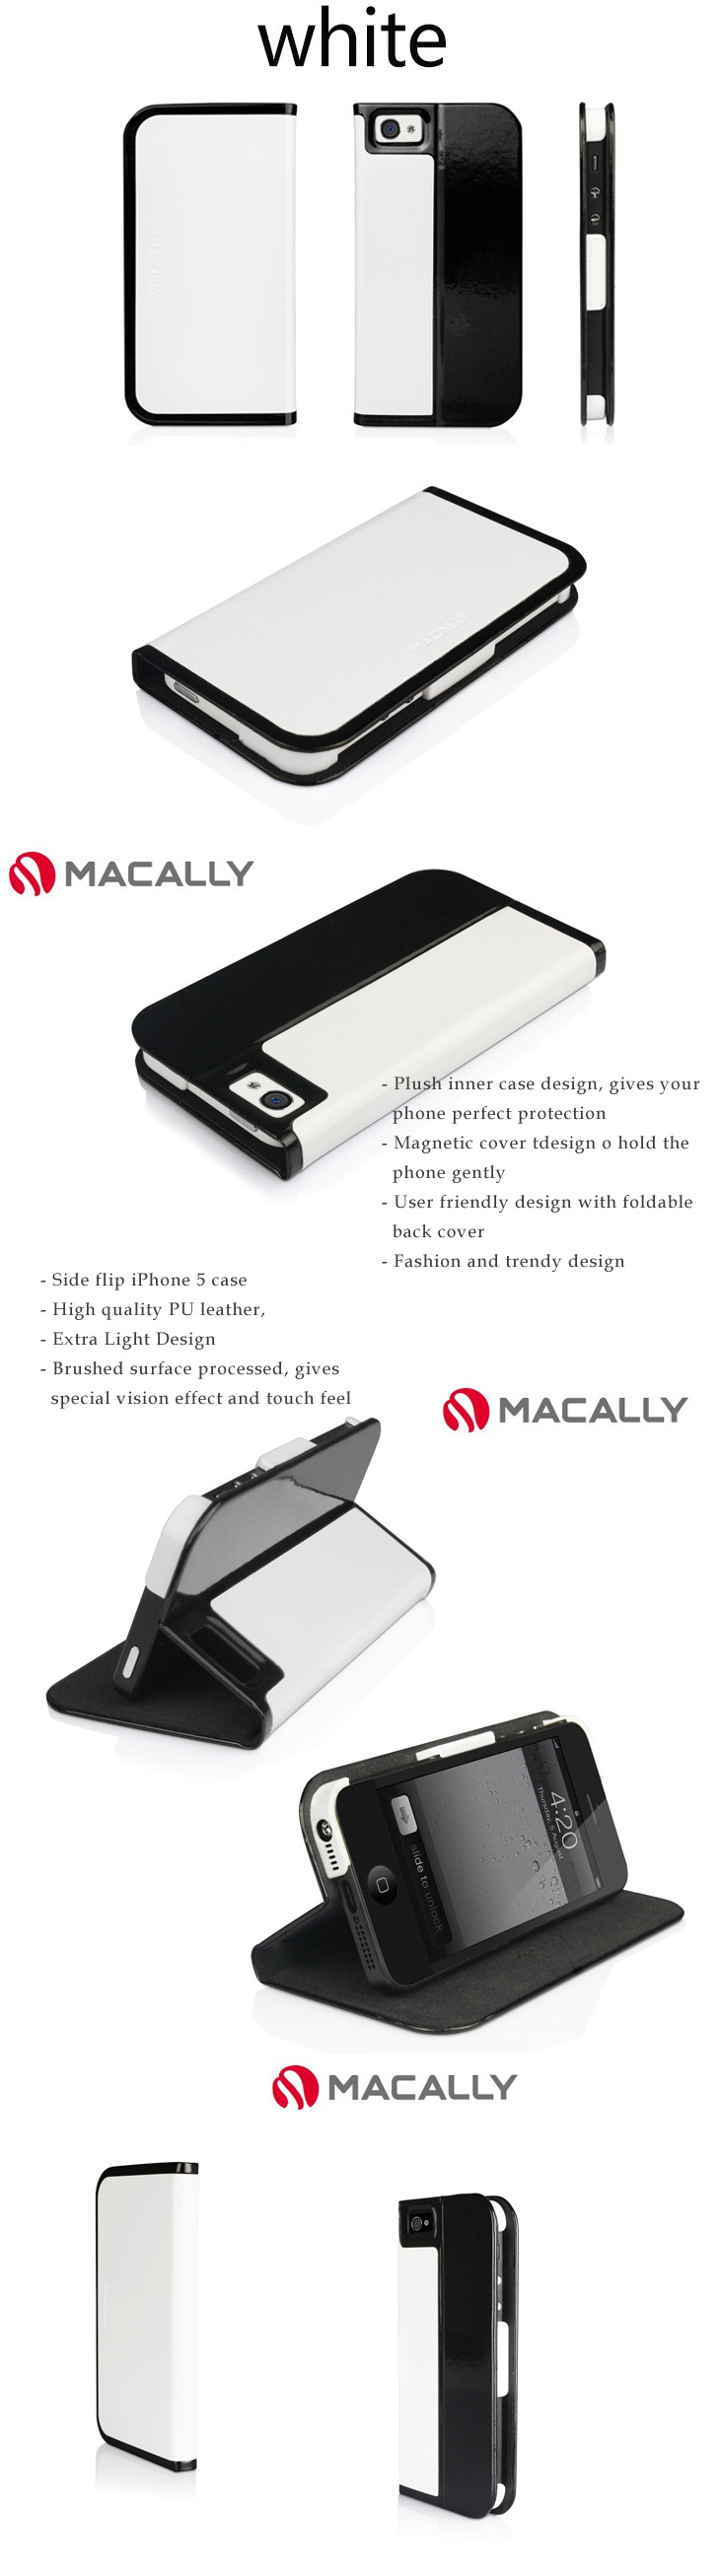 Macally iPhone 5/5S Case Skin -  Side Flip Case with Magnetic Stand Feature,  Trendy Dual Colors  Design